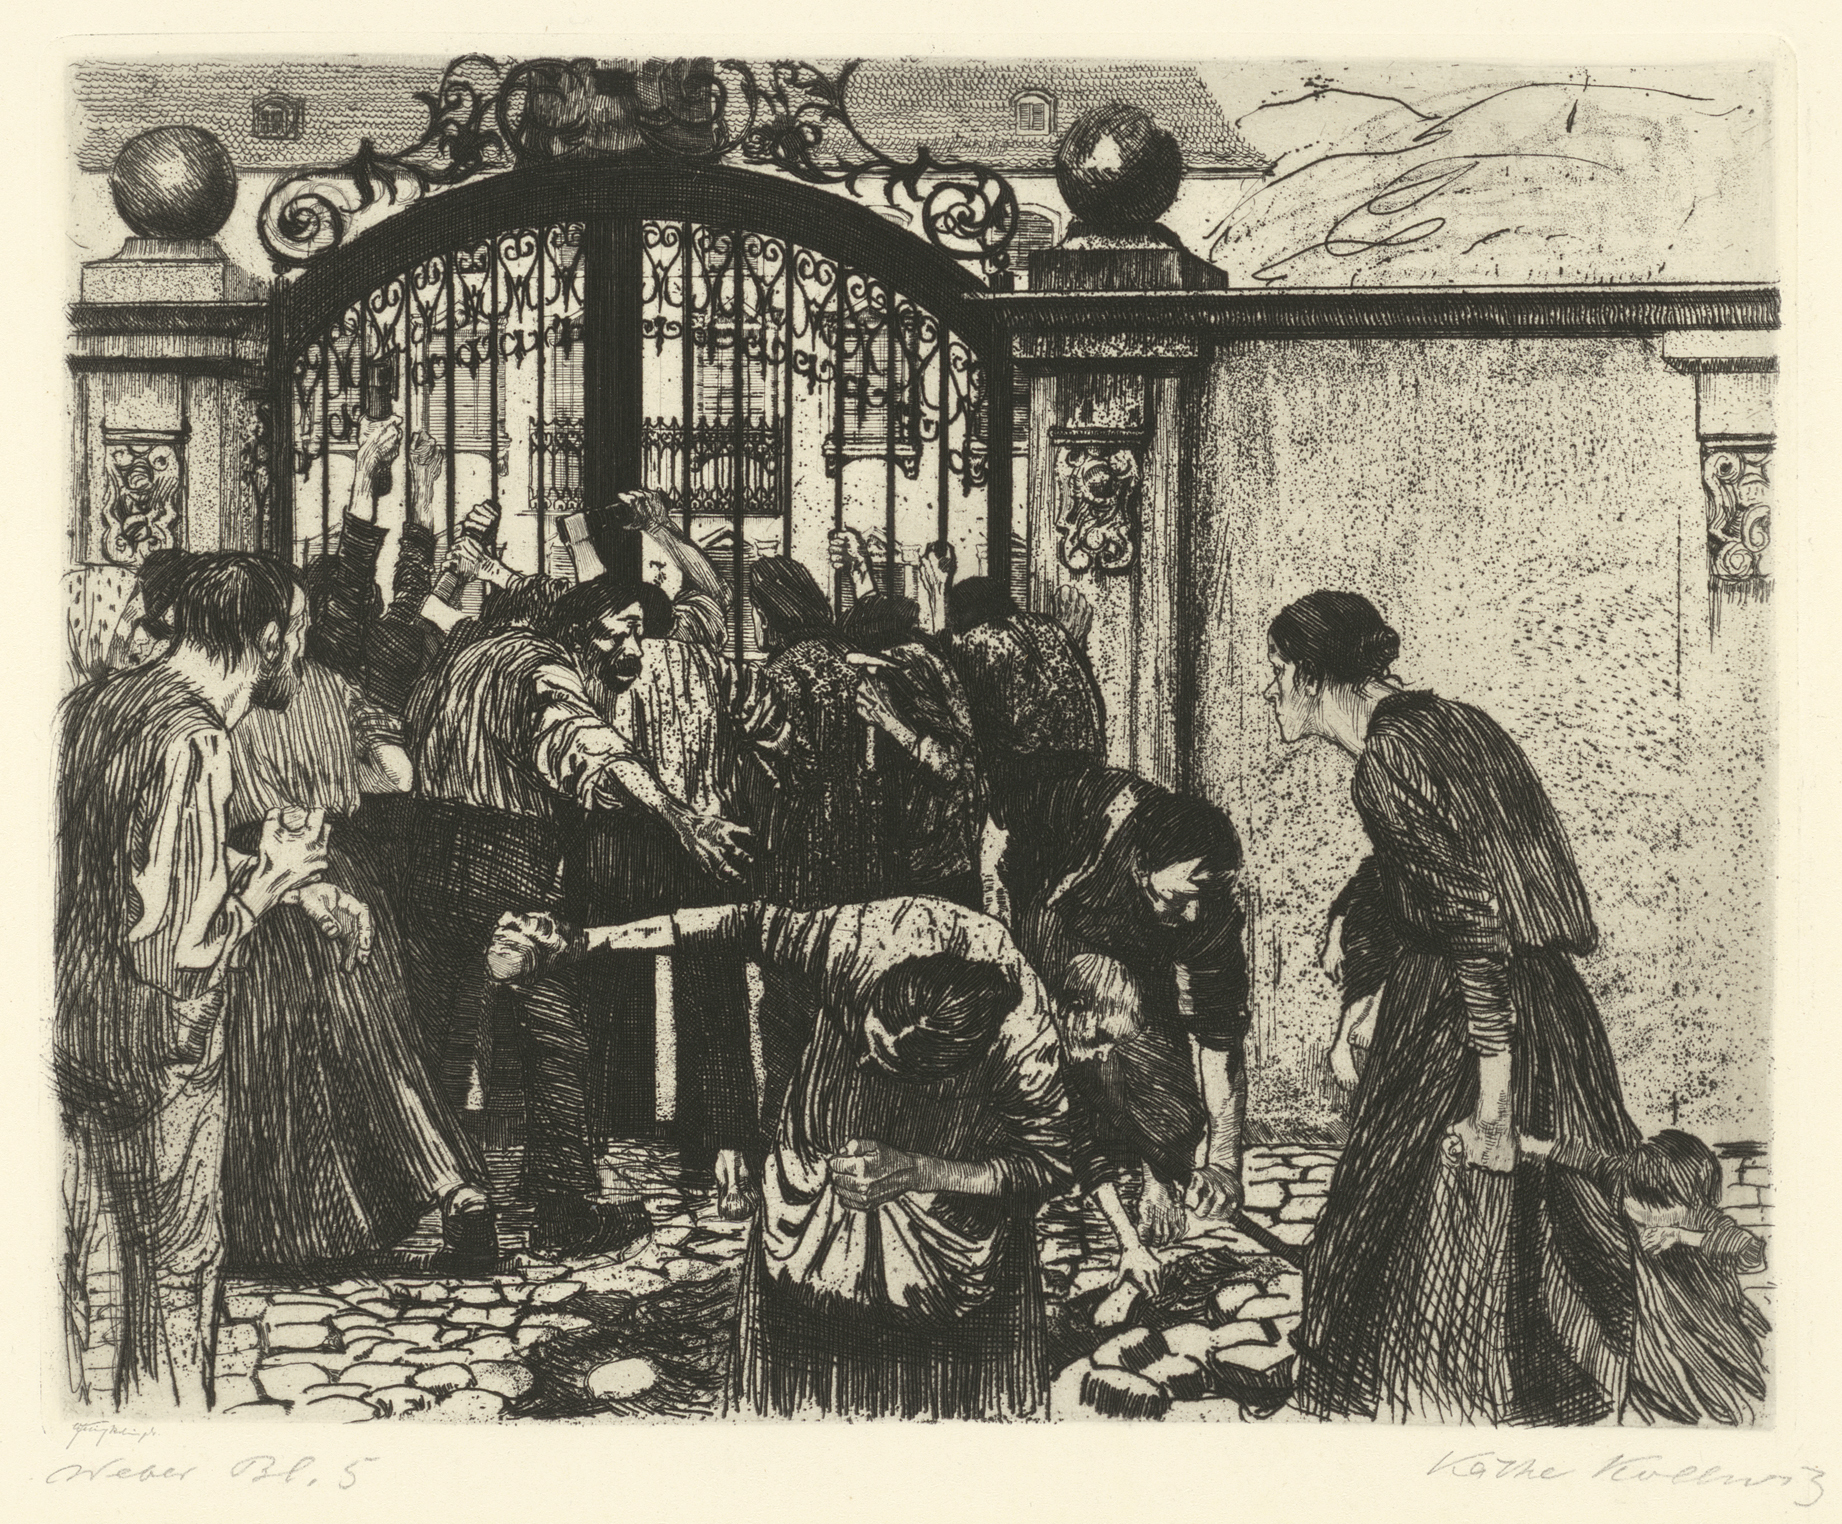 Käthe Kollwitz, Storming the Gate - Attack, sheet 5 of the cycle »A Weavers' Revolt«, 1893-1897, line etching and sandpaper, Kn 37 II a, Cologne Kollwitz Collection © Käthe Kollwitz Museum Köln